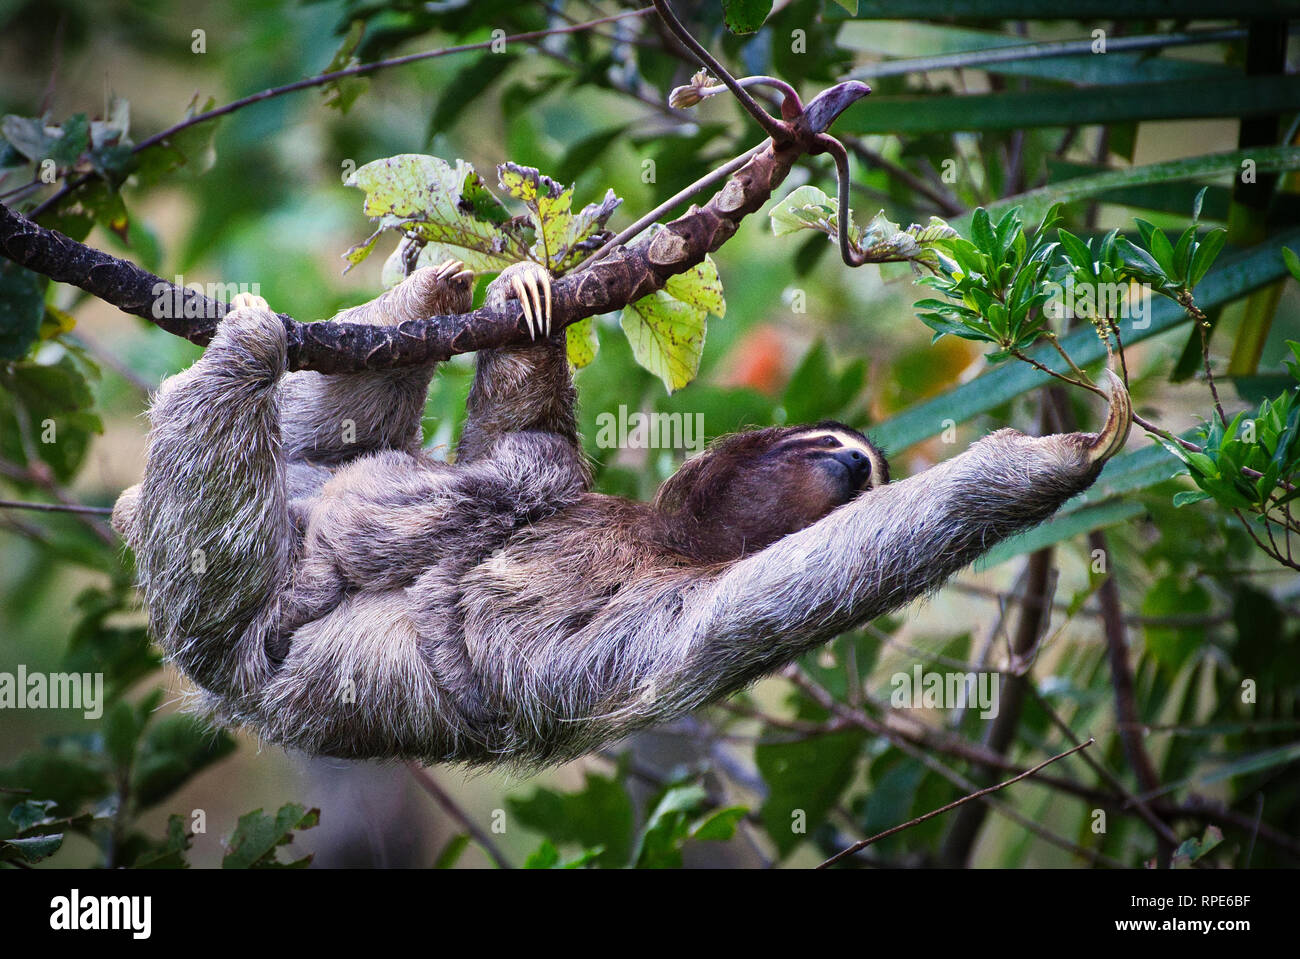 Three-toed sloth, a brown-throated sloth (Bradypus variegatus) with baby image taken in Panama Stock Photo